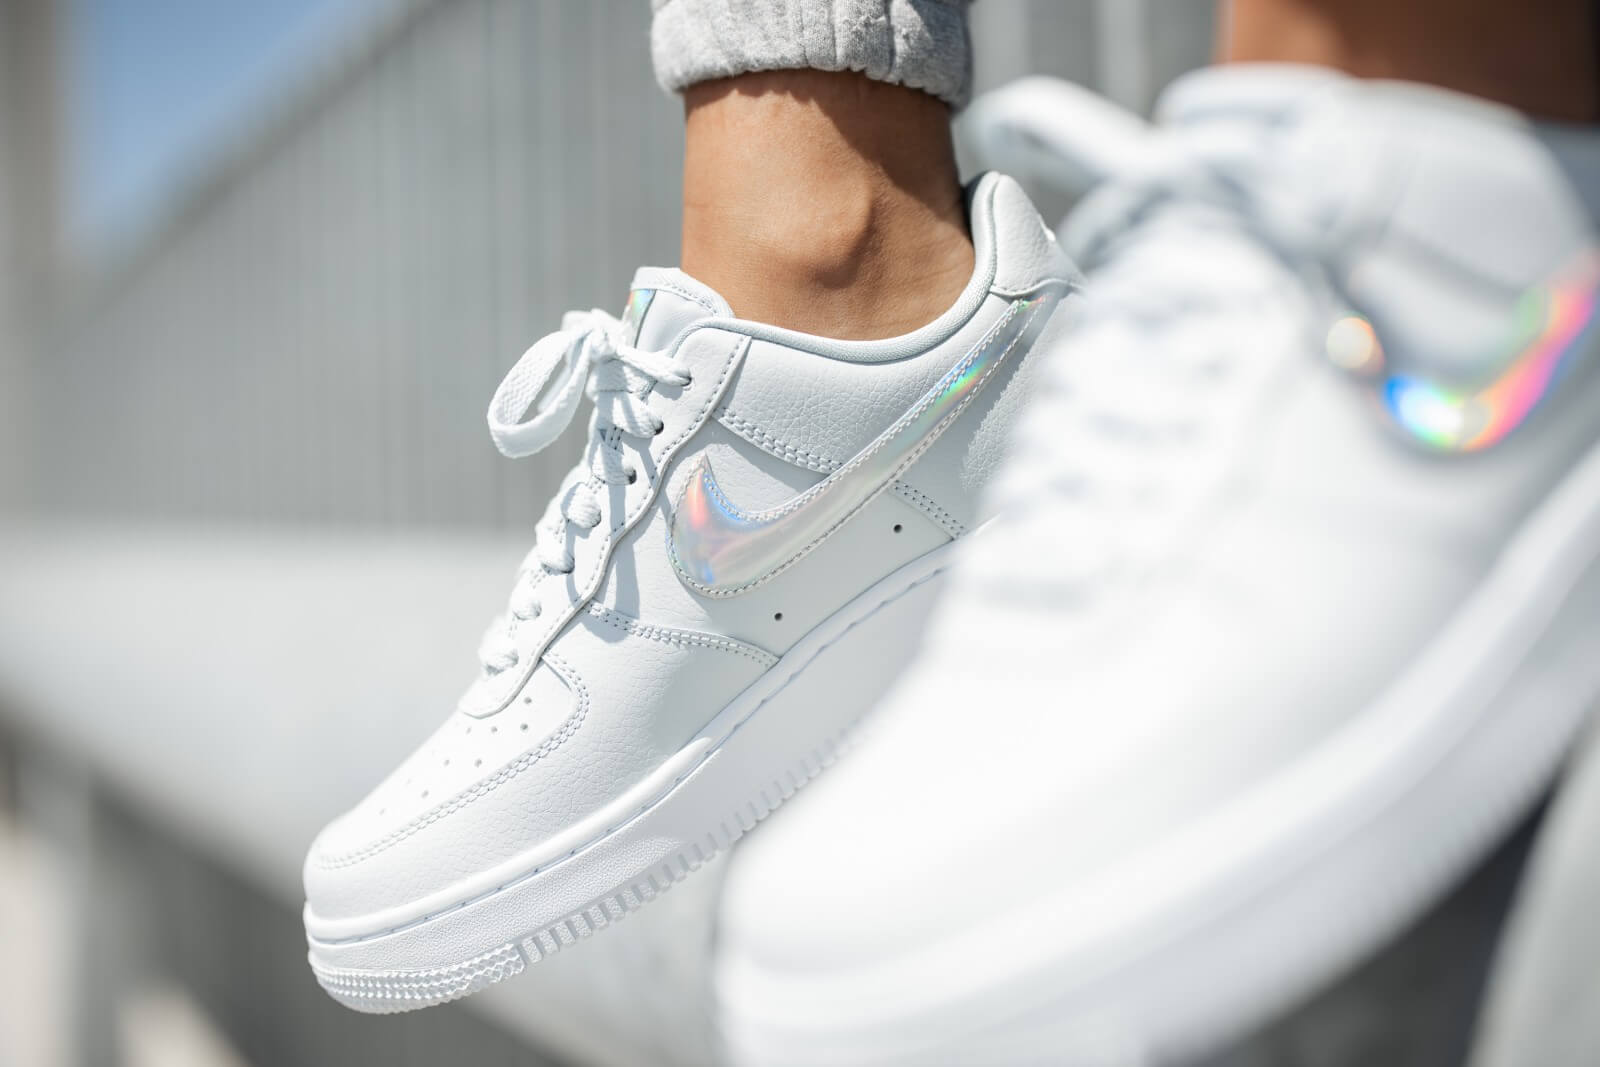 Nike Women's Air Force 1 '07 ESS Irredescent Swoosh Aura/White